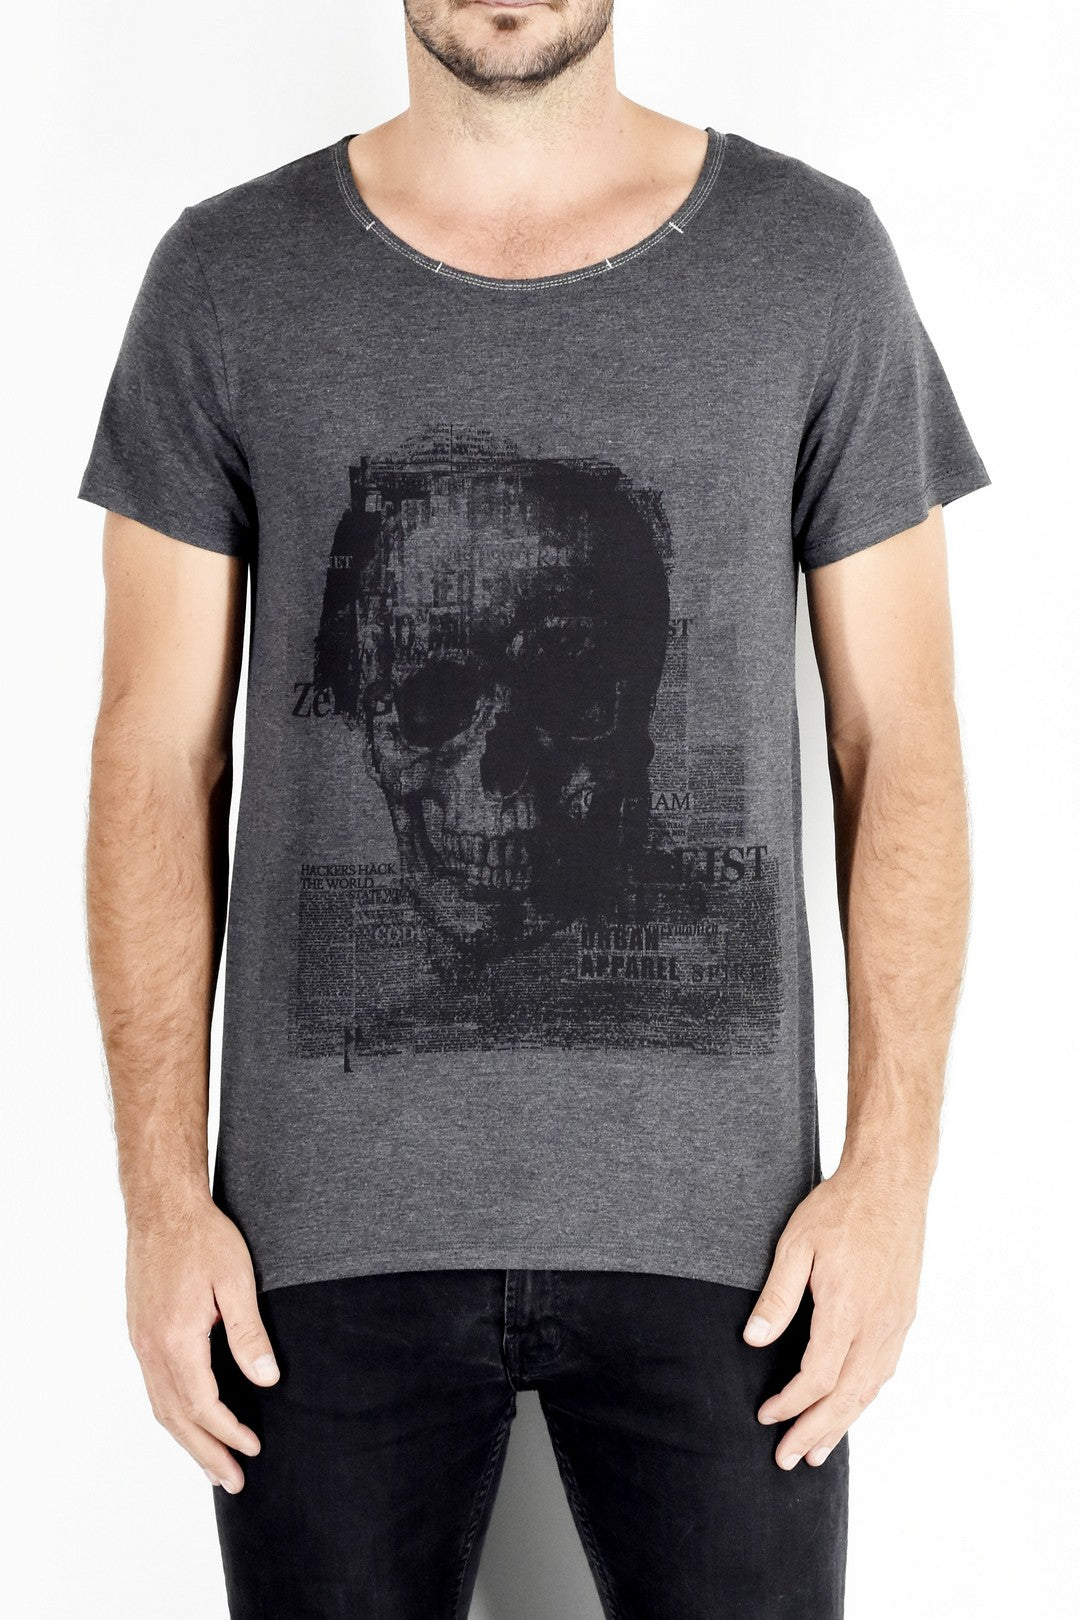 Skull print T in Charcoal Grey ZG5160